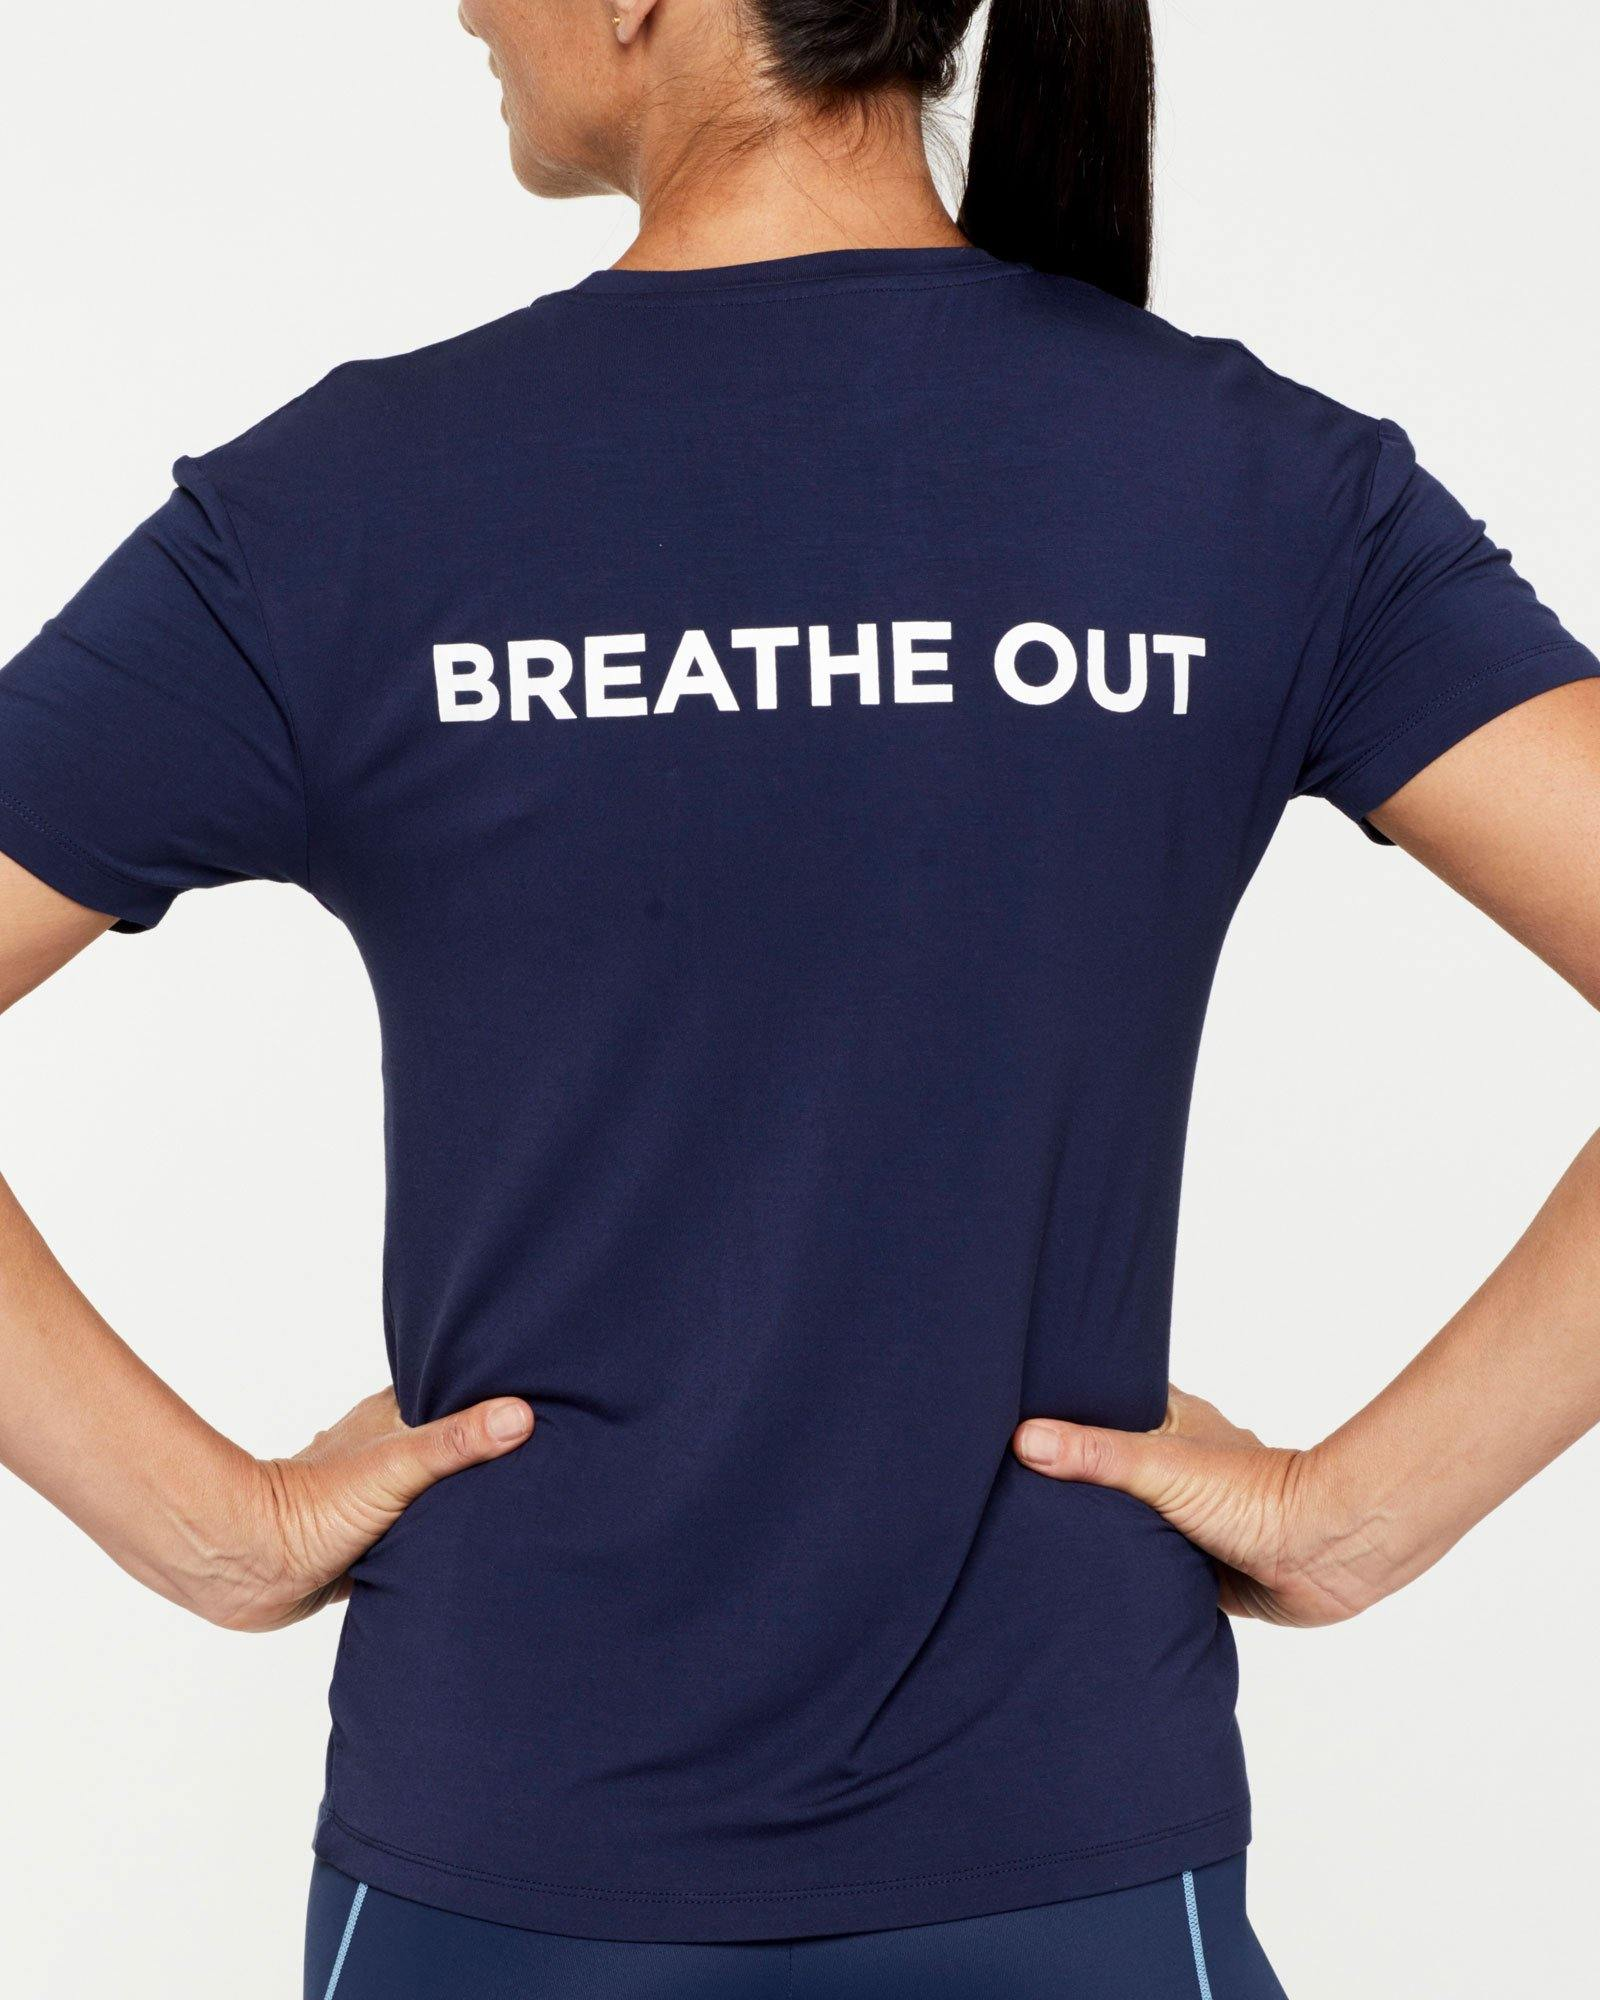 Femininely SCAPULAE Bamboo T-SHIRT, Navy blue WITH WHITE MESSAGING, BACK VIEW